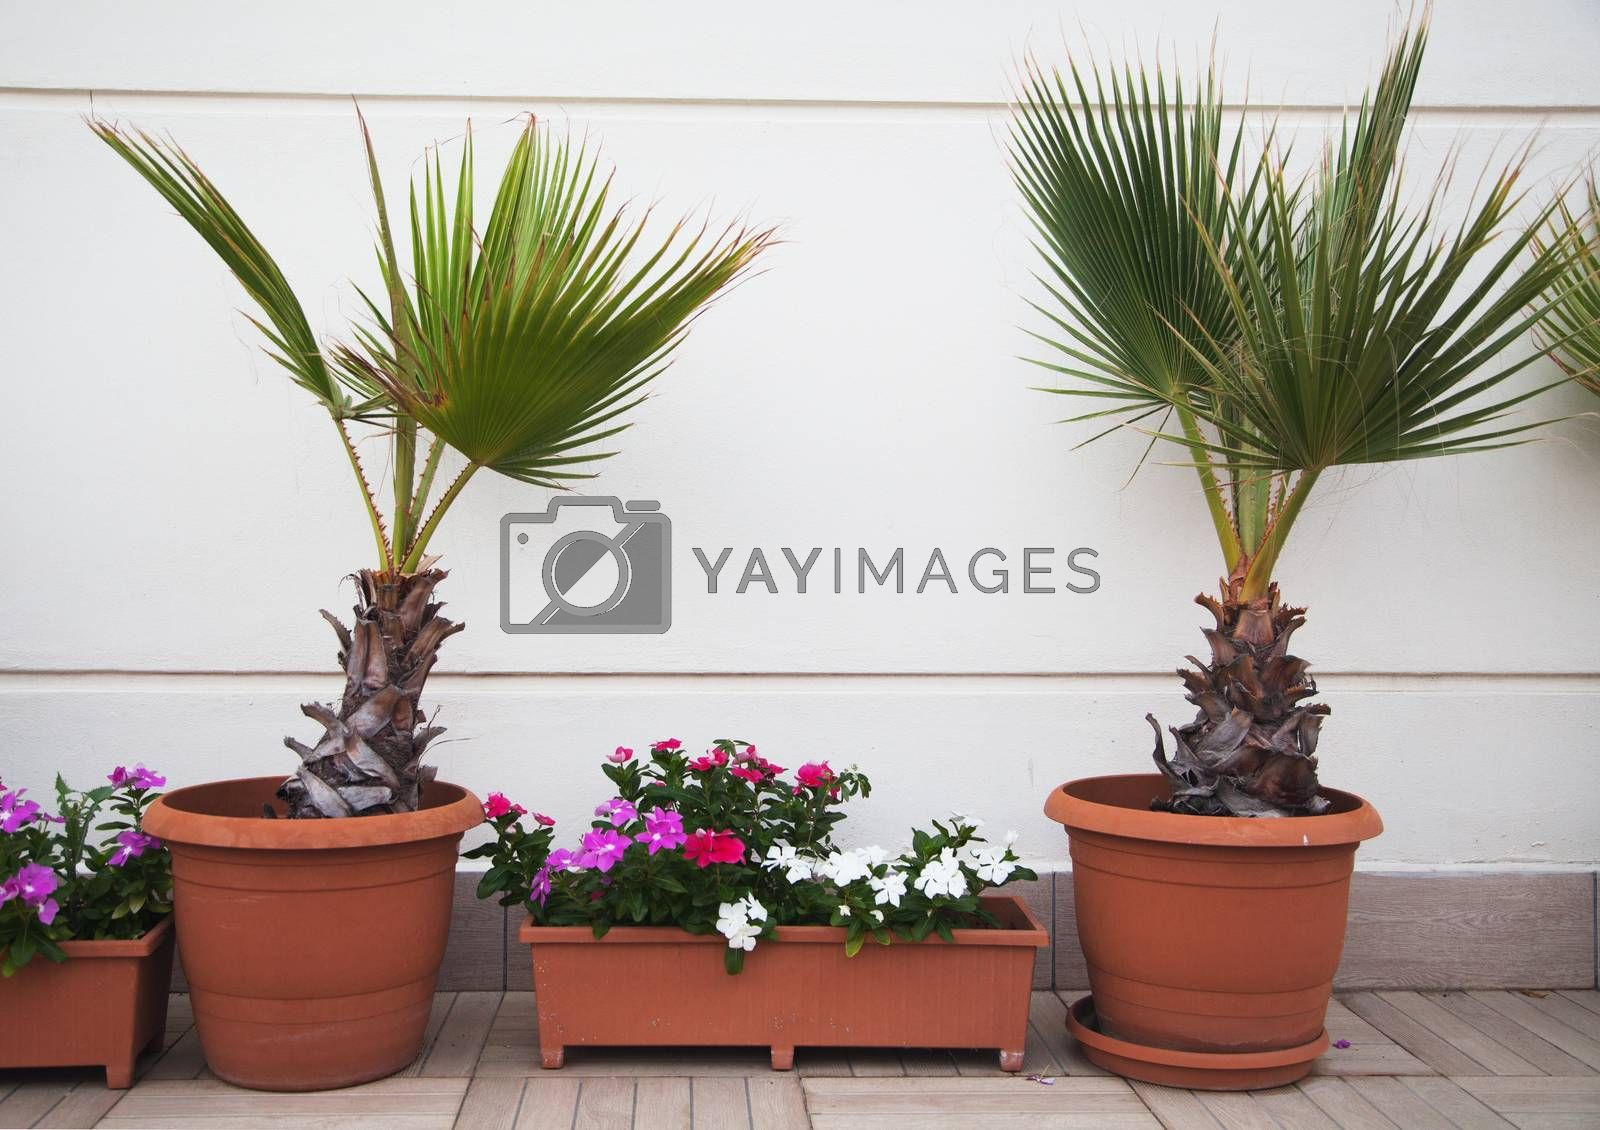 Two decorative palms and flowers in pots